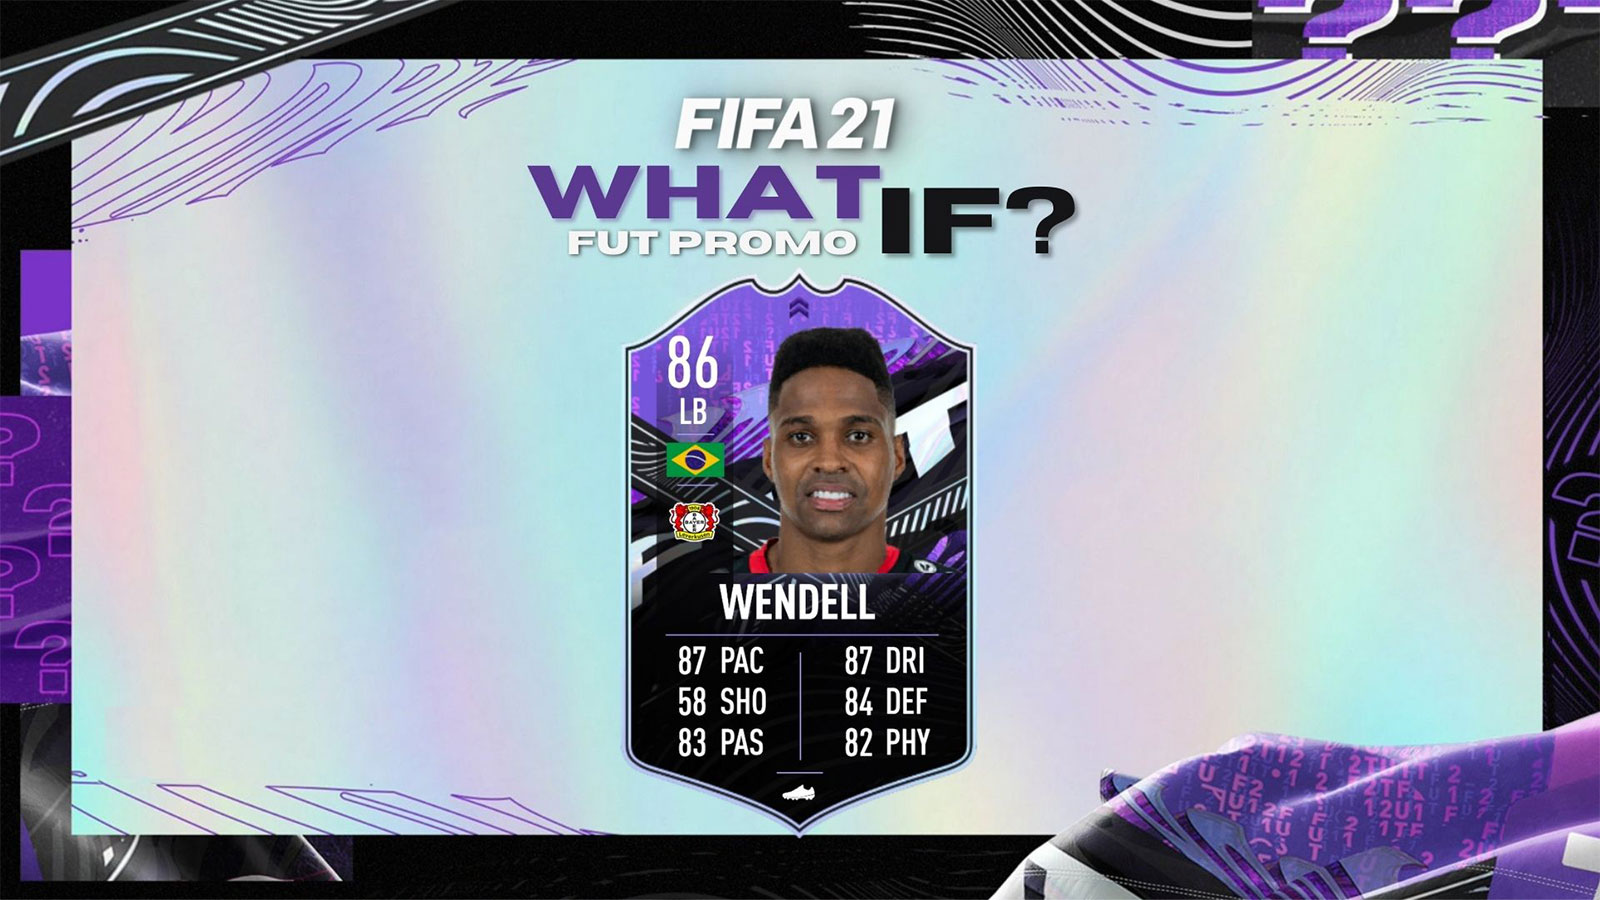 Wendell What If SBC FIFA 21